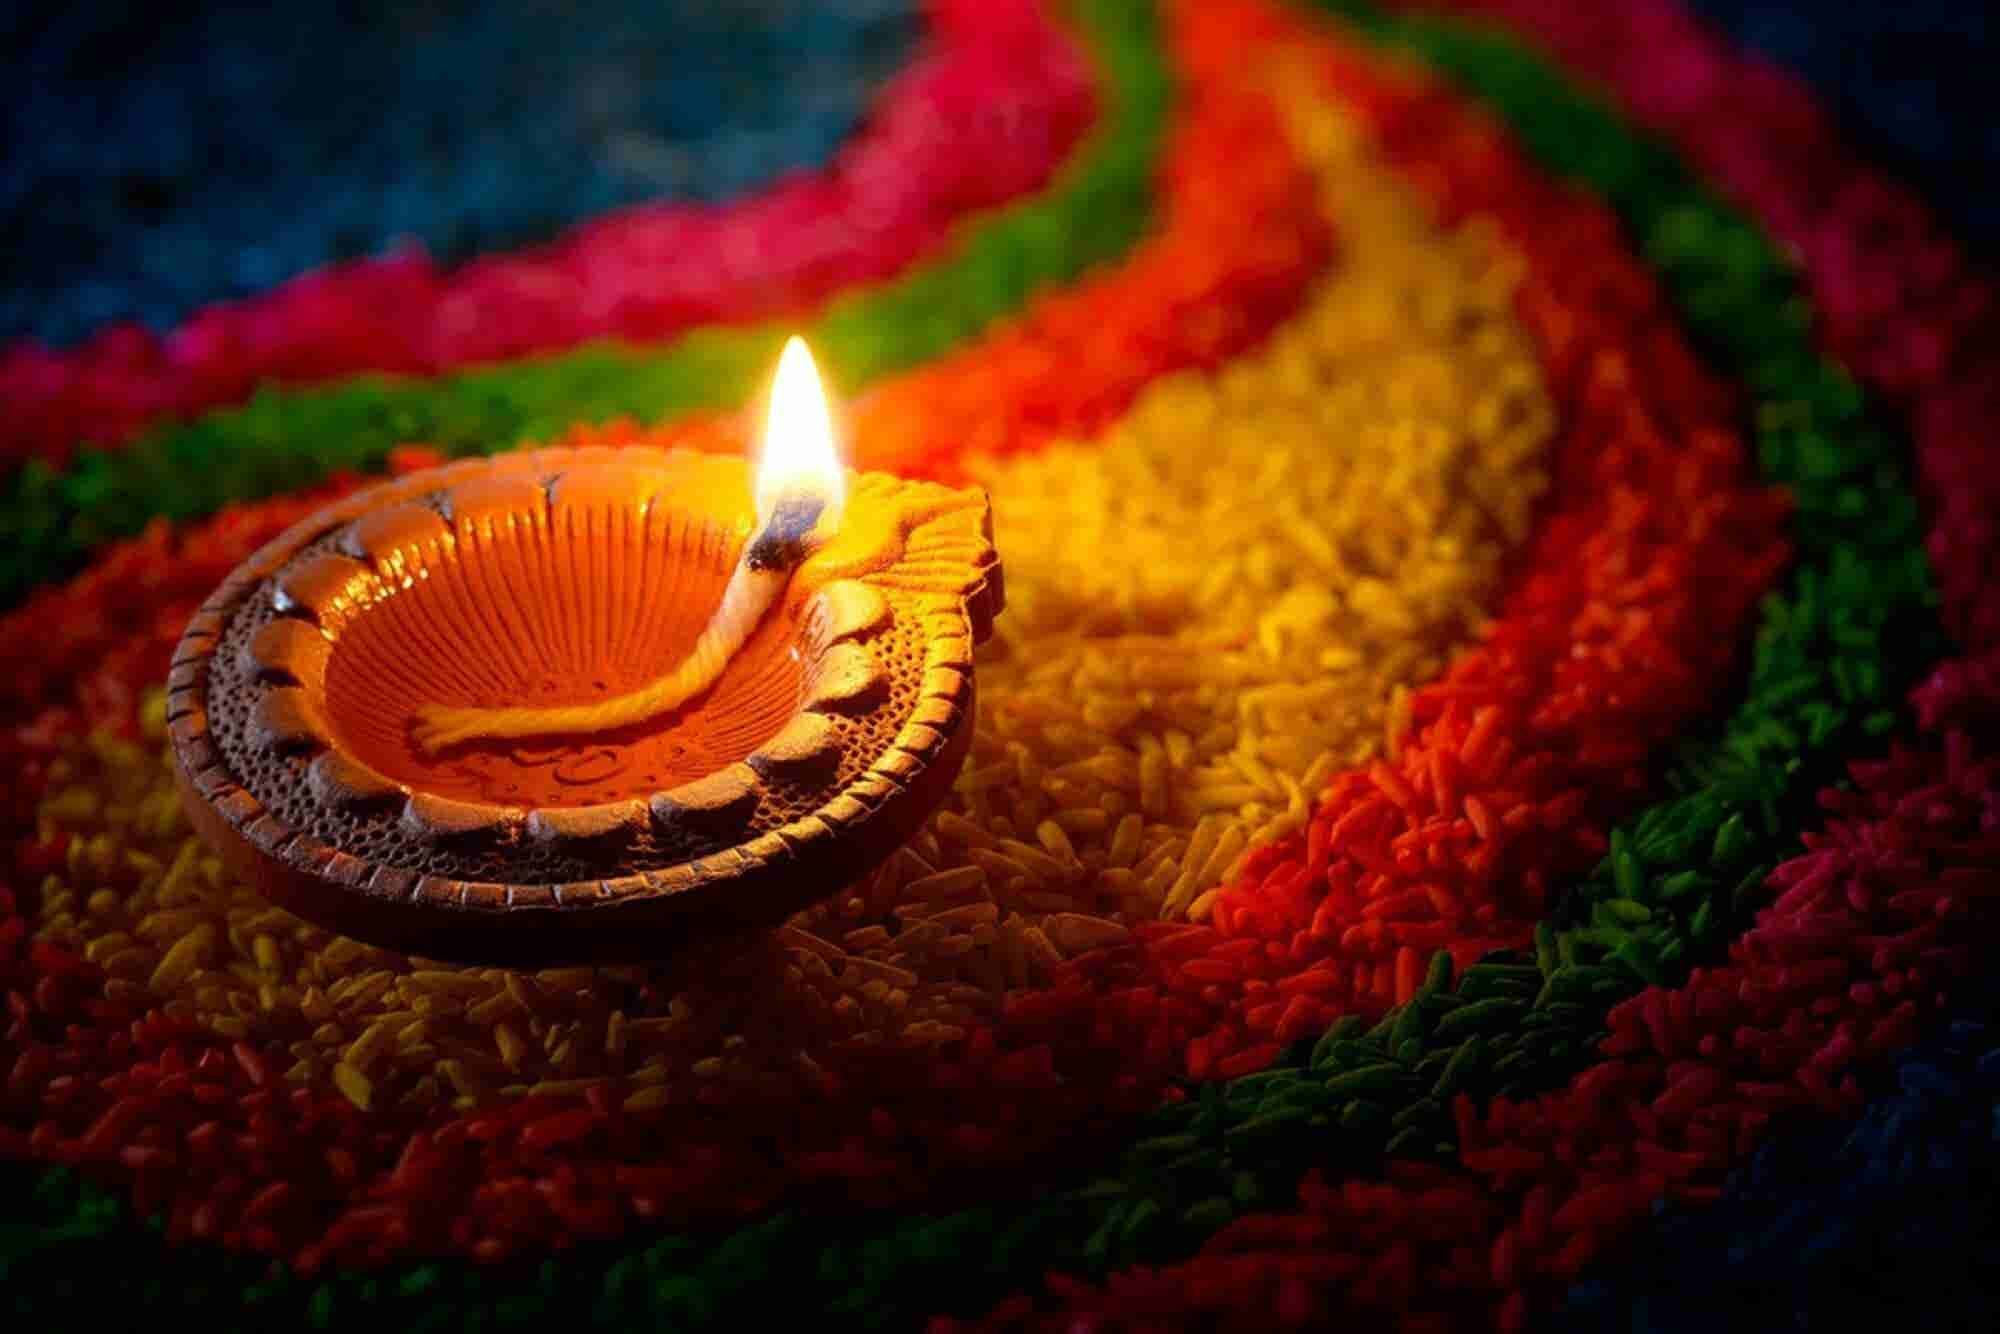 Want Your Brand To Be Seen This Diwali? These Startups Have Ensured Theirs Get Noticed